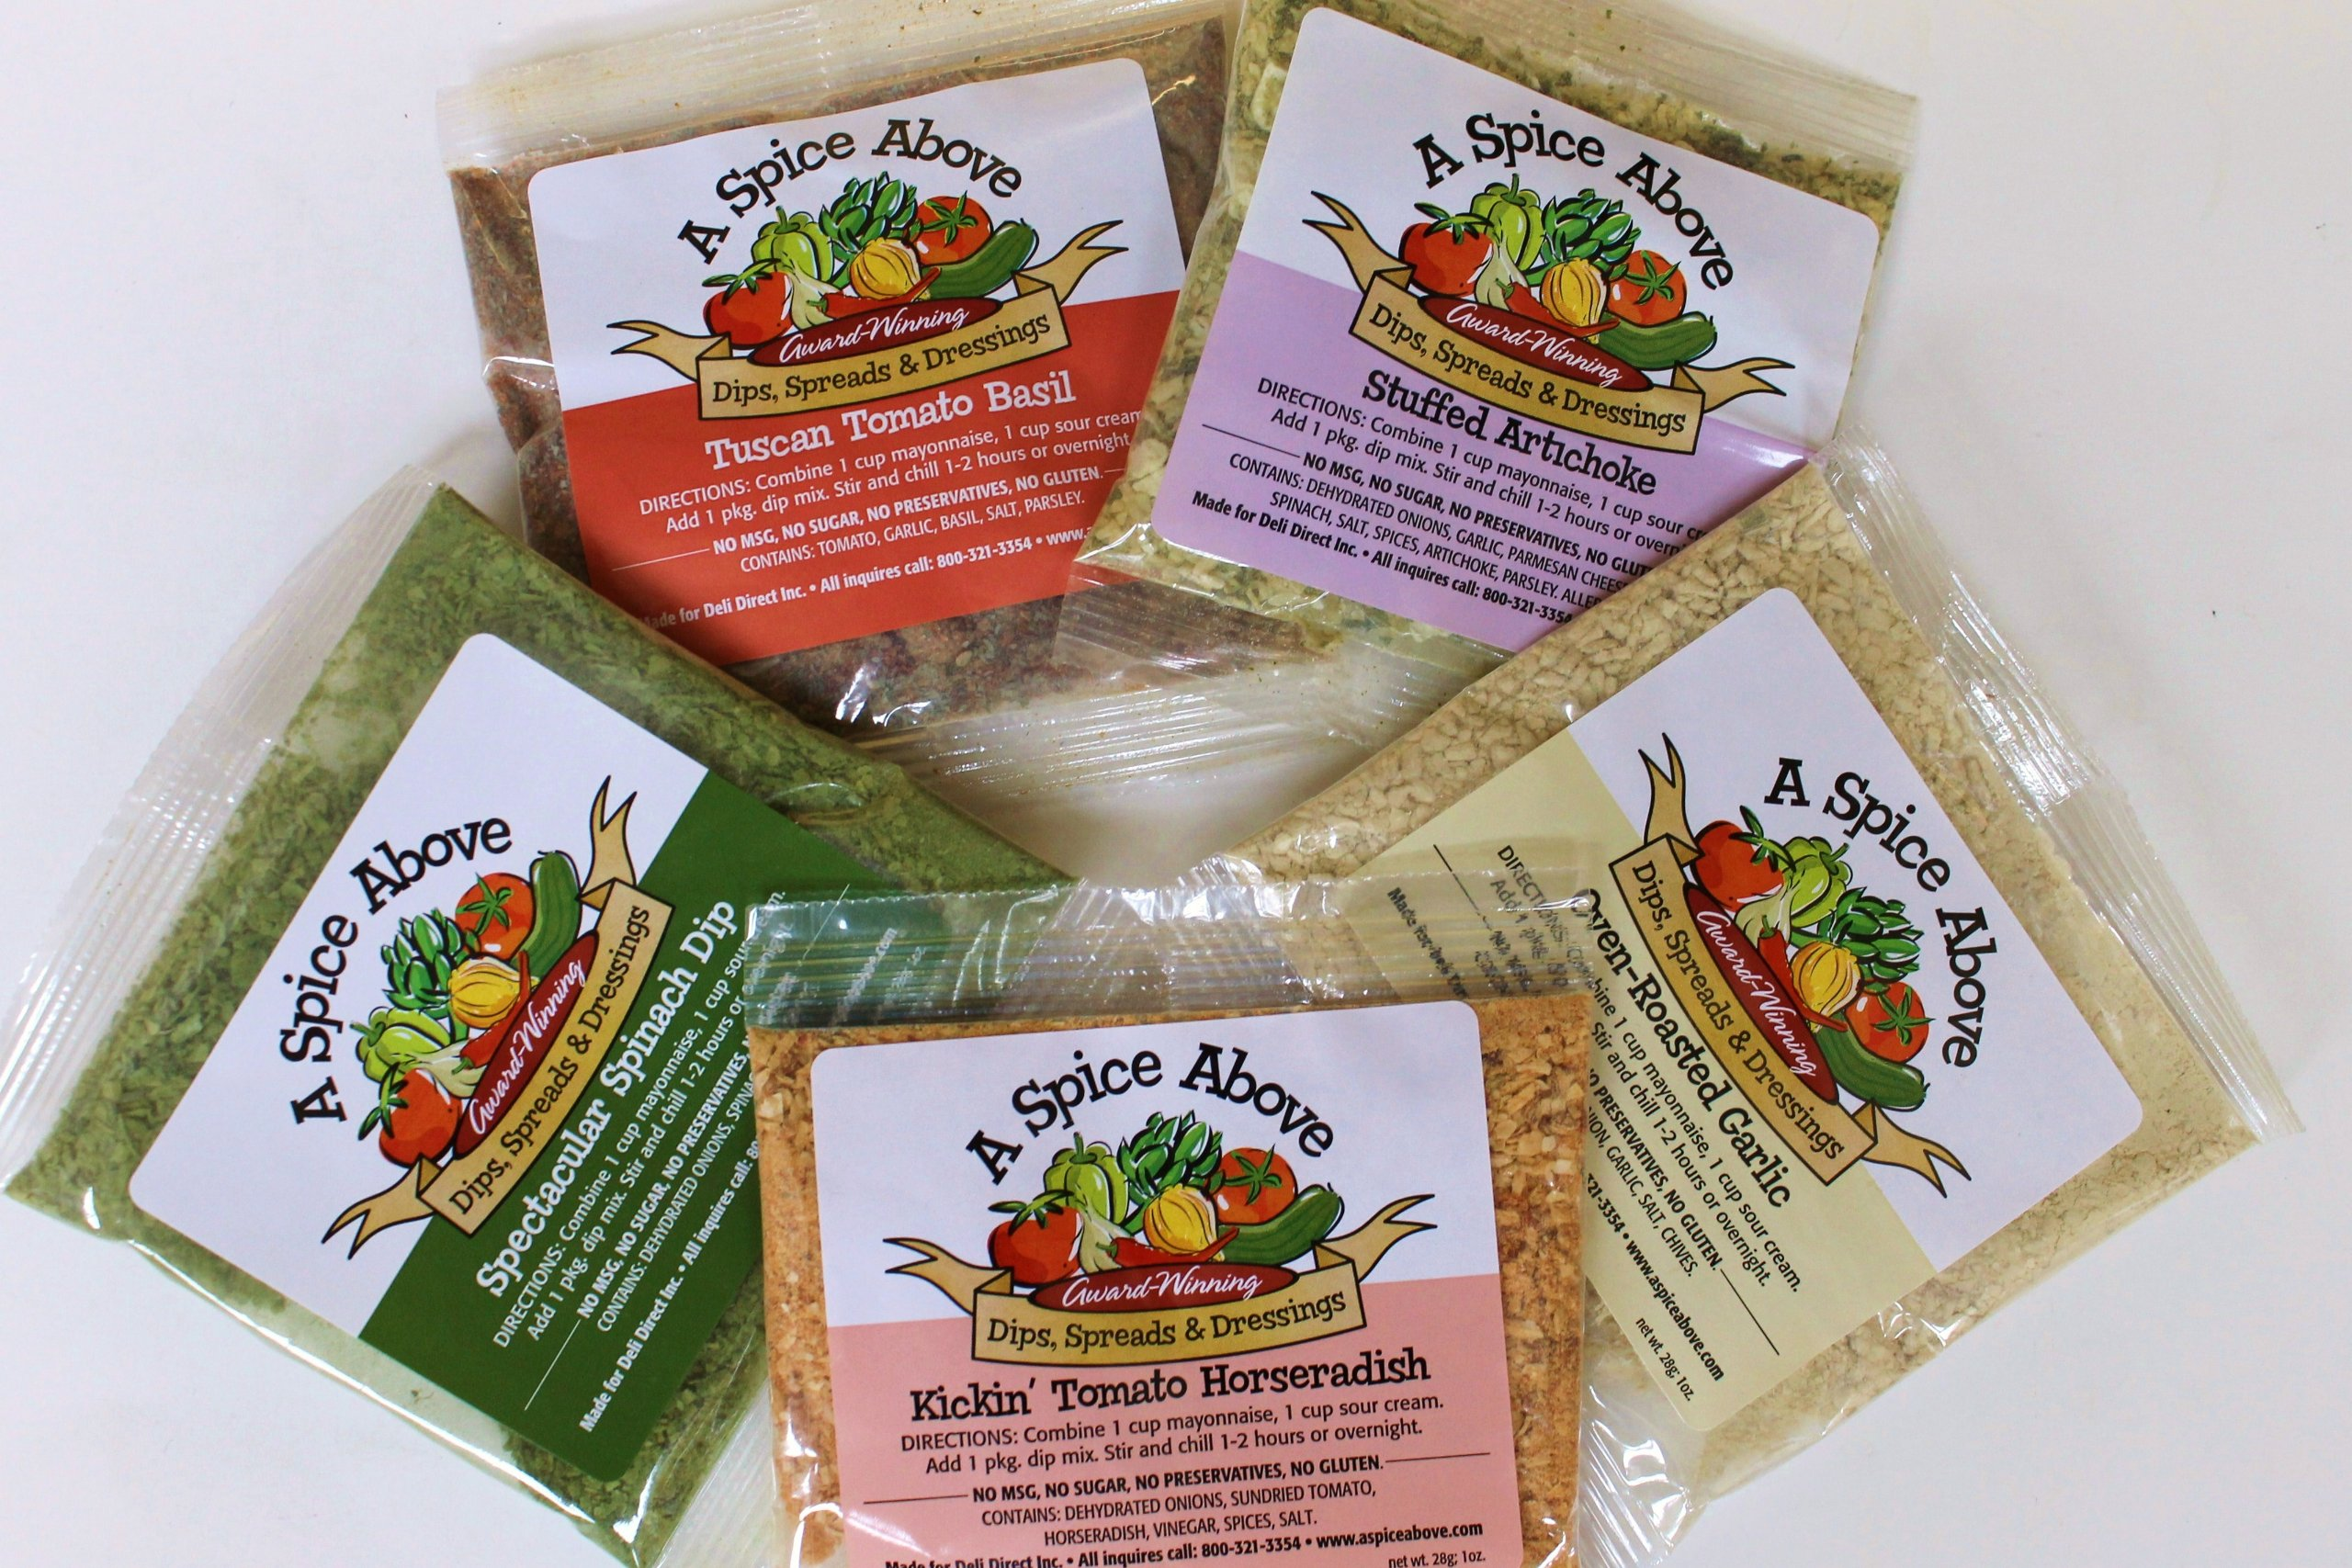 Variety Pack of 5 Dips by Deli Direct/A Spice Above